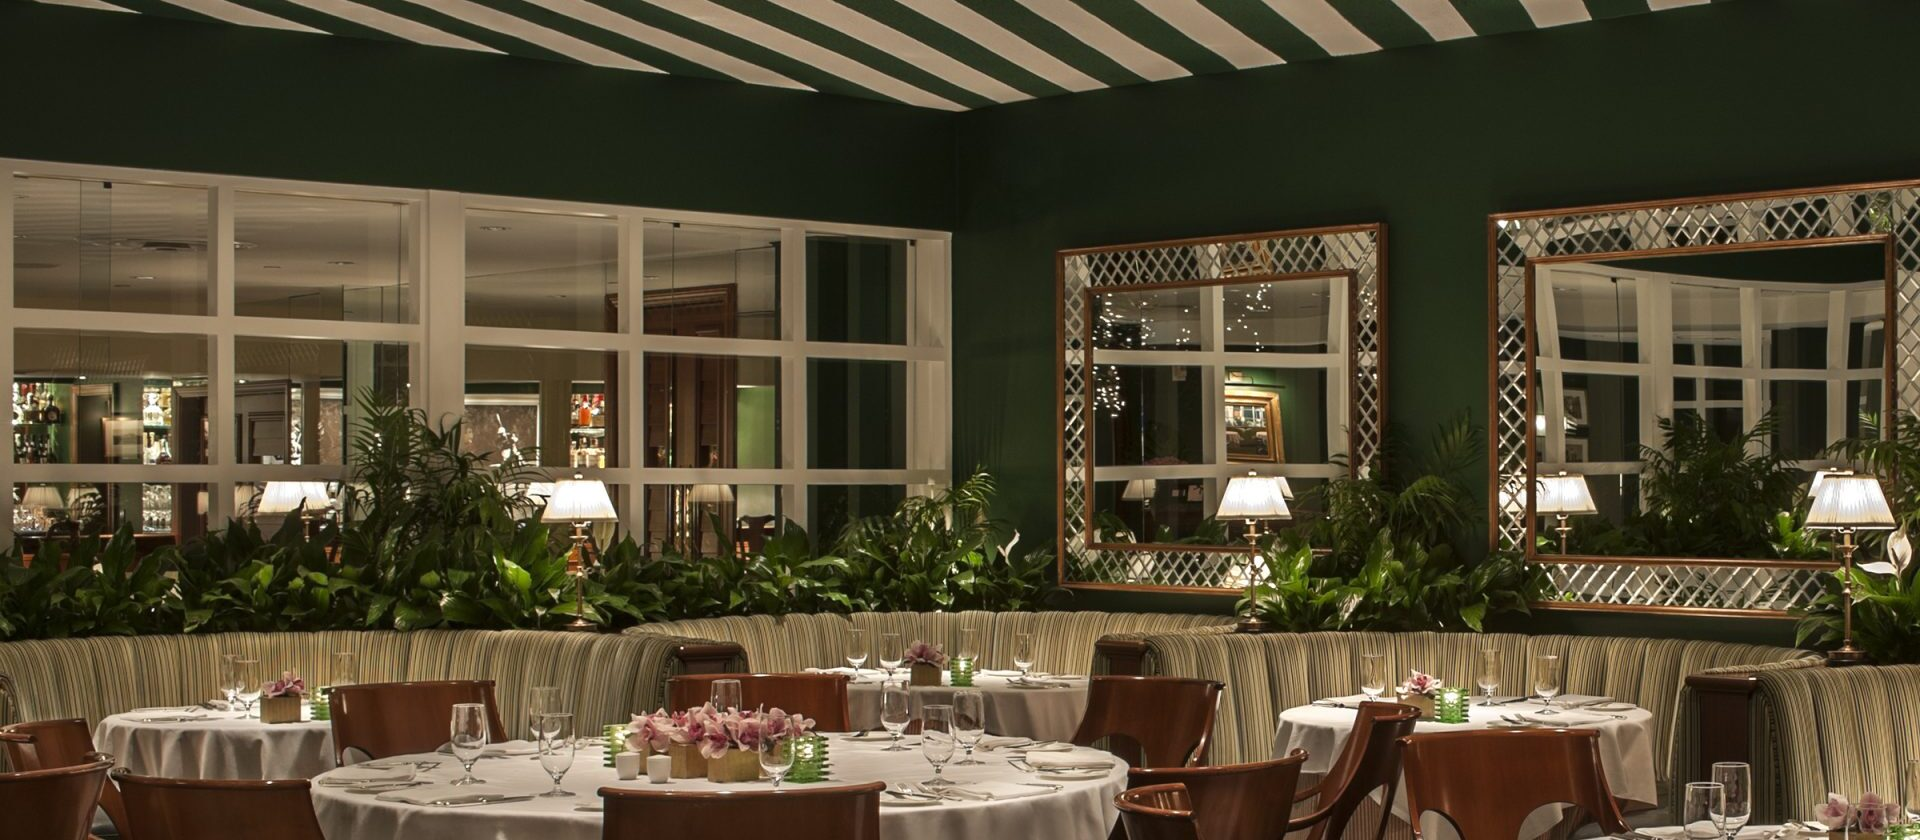 The Polo Lounge - The Beverly Hills Hotel   Dorchester Collection b46a7a1105b3